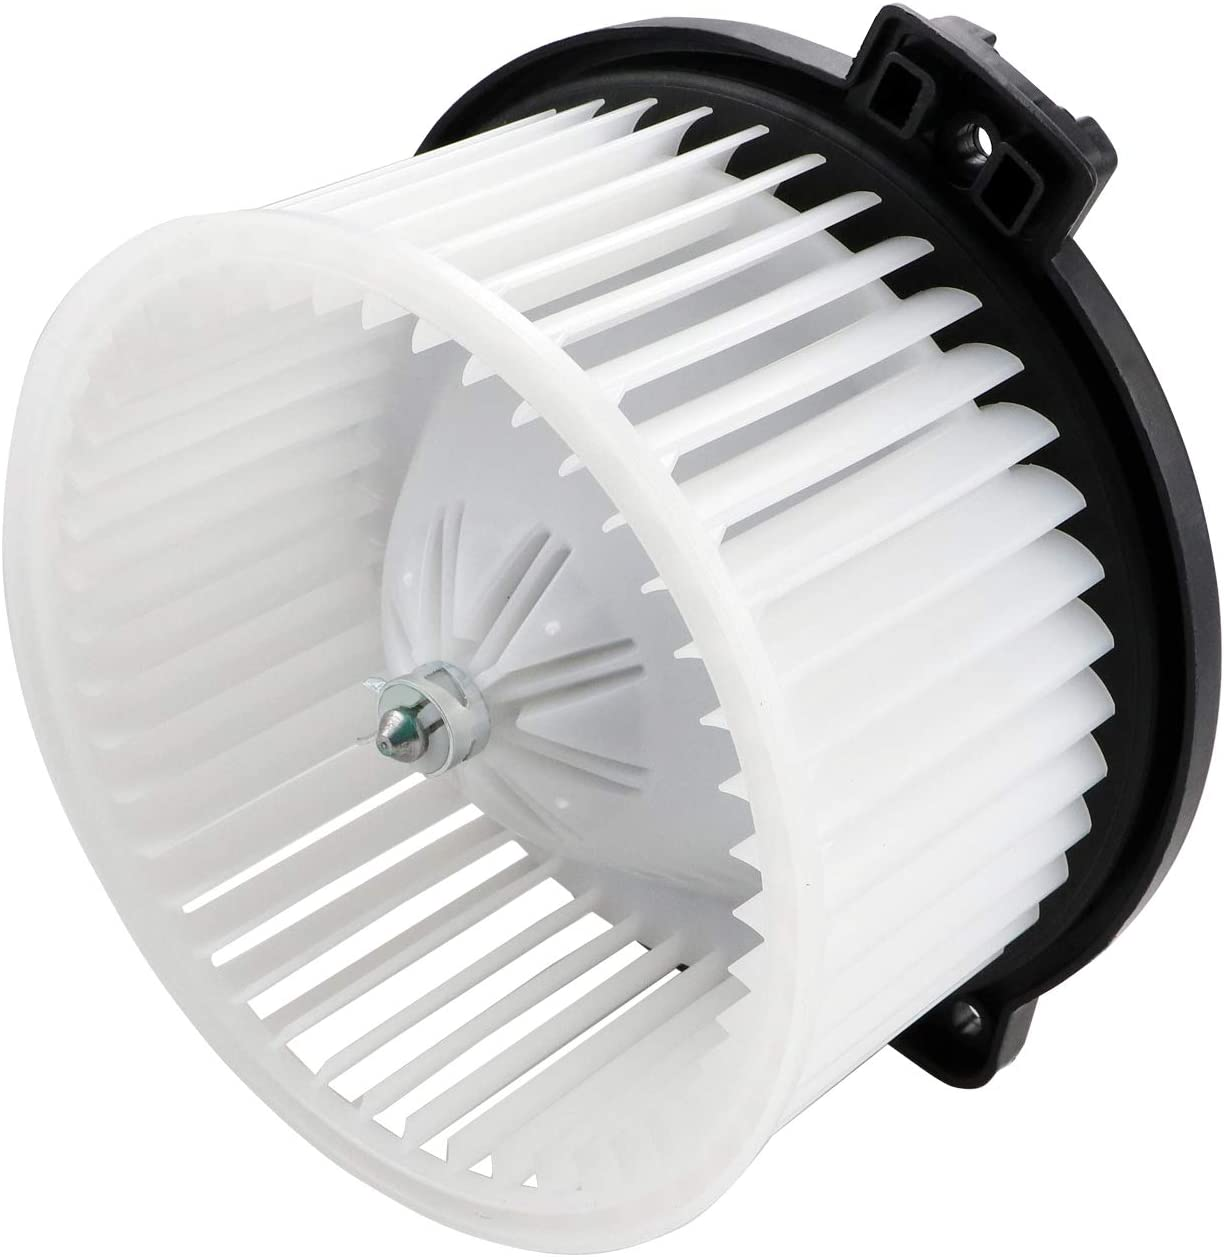 Youxmoto ABS Plastic Blower Motor Air Conditioning And Heating with Fan Cage Fit for 2000 2001 2002 2003 2004 2005 2006 Toyota Tundra 87103-0C010 700060